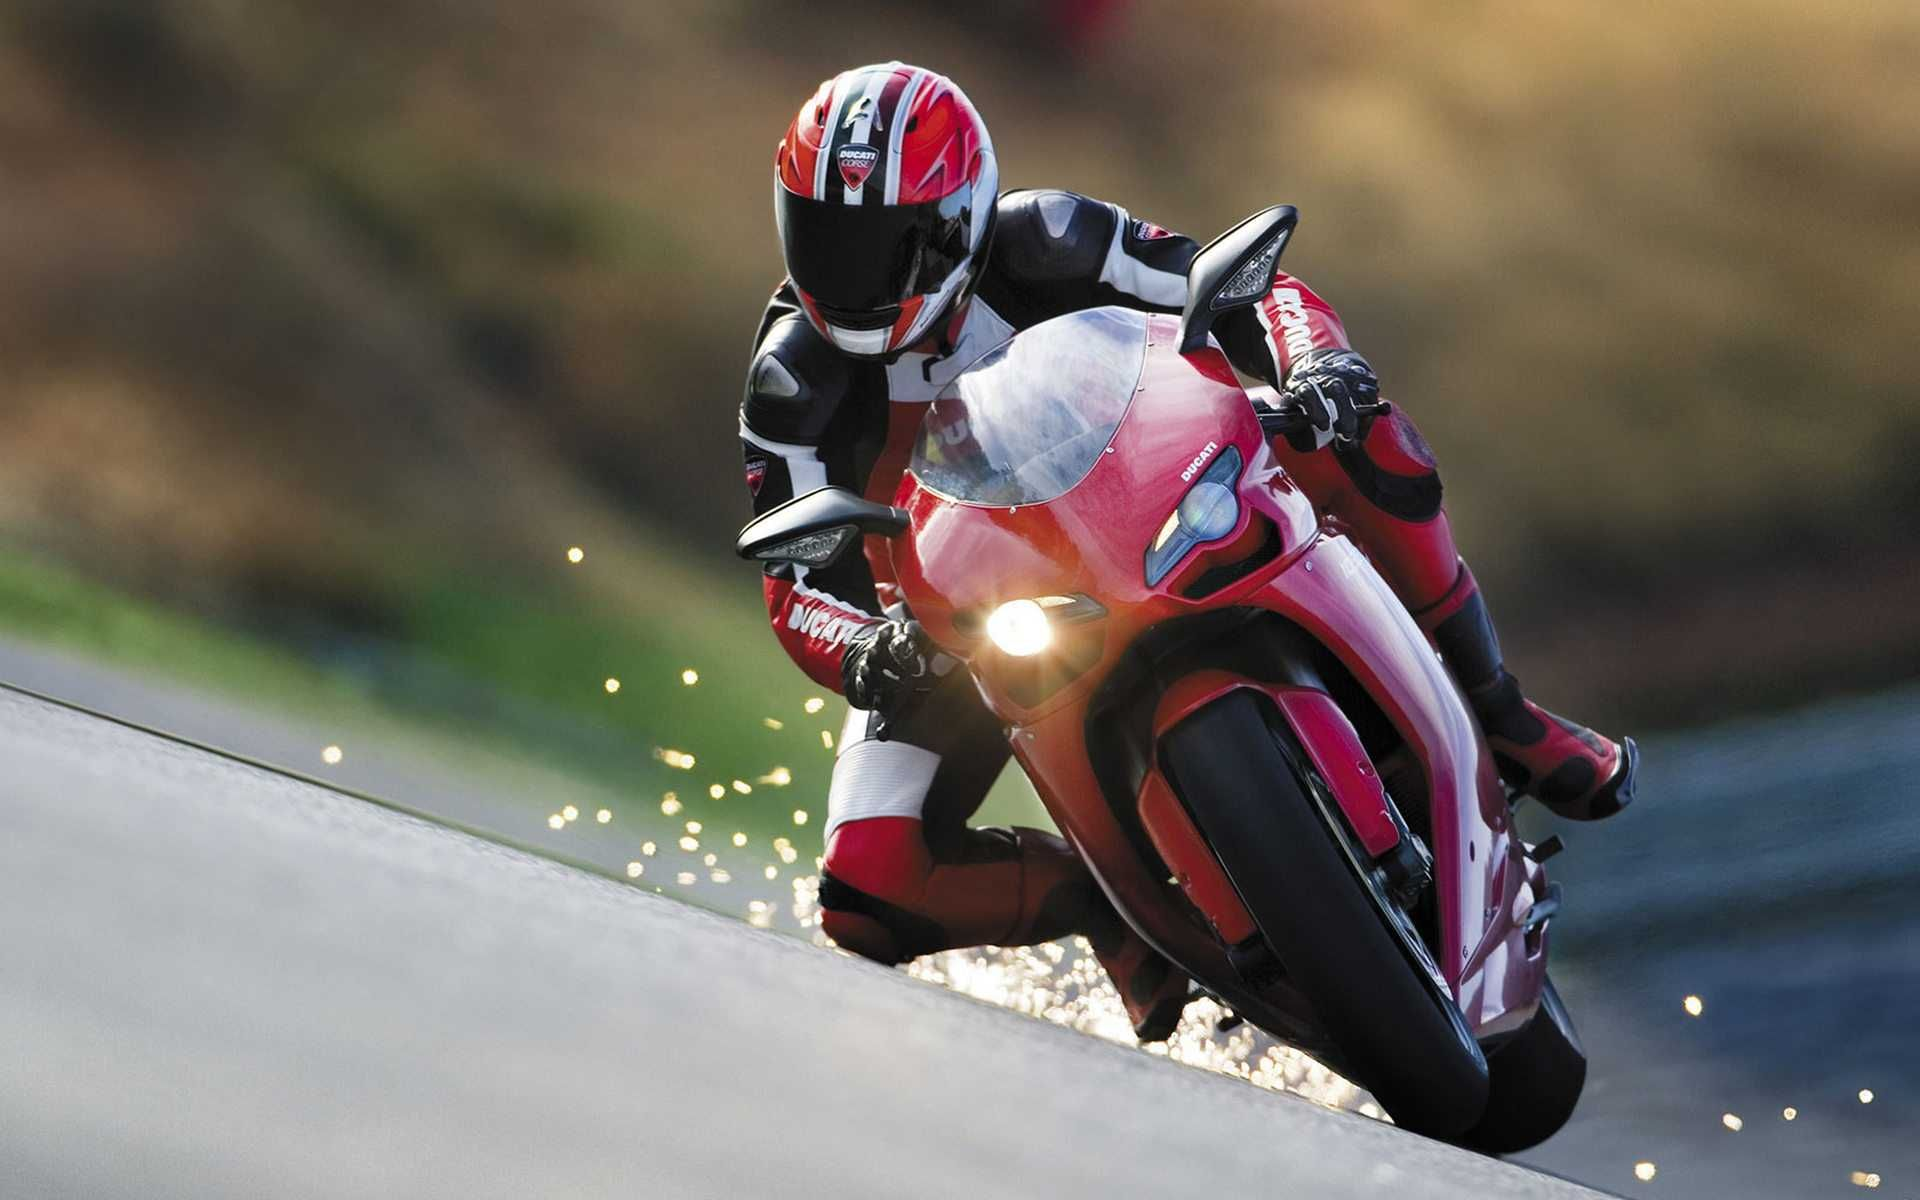 Ducati On Race Hd Image Racing Bikes Racing Suzuki Bikes